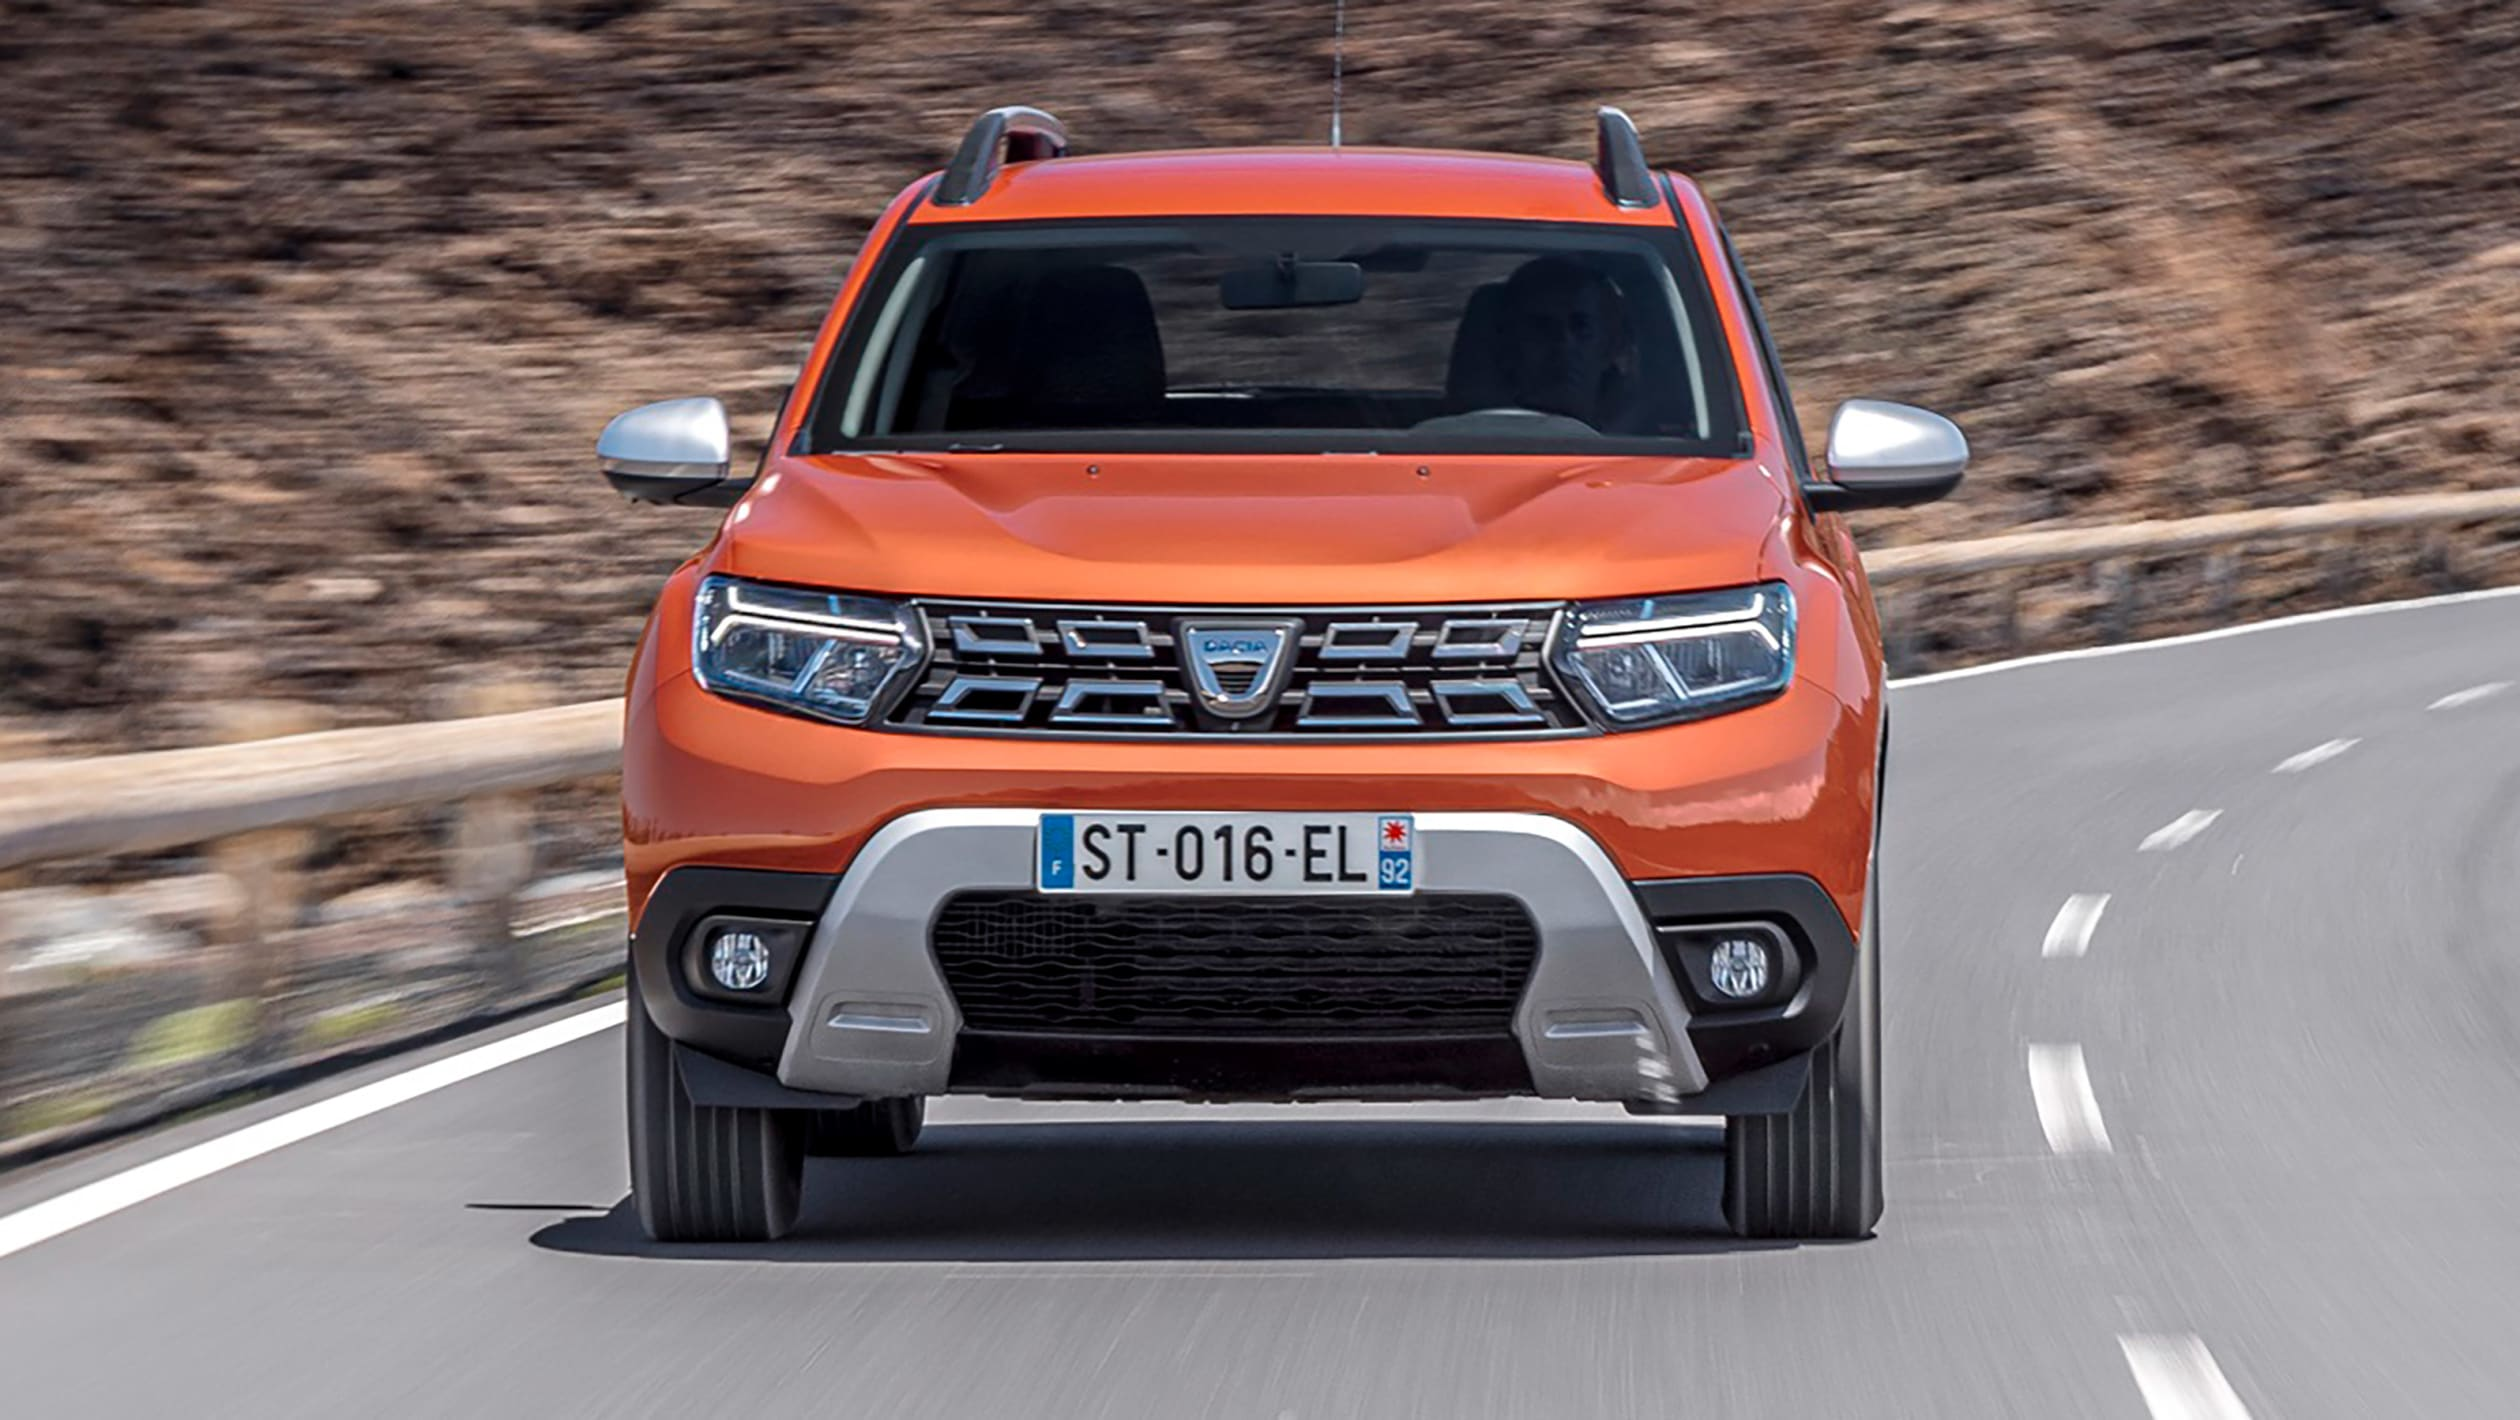 The New Dacia Duster Facelift